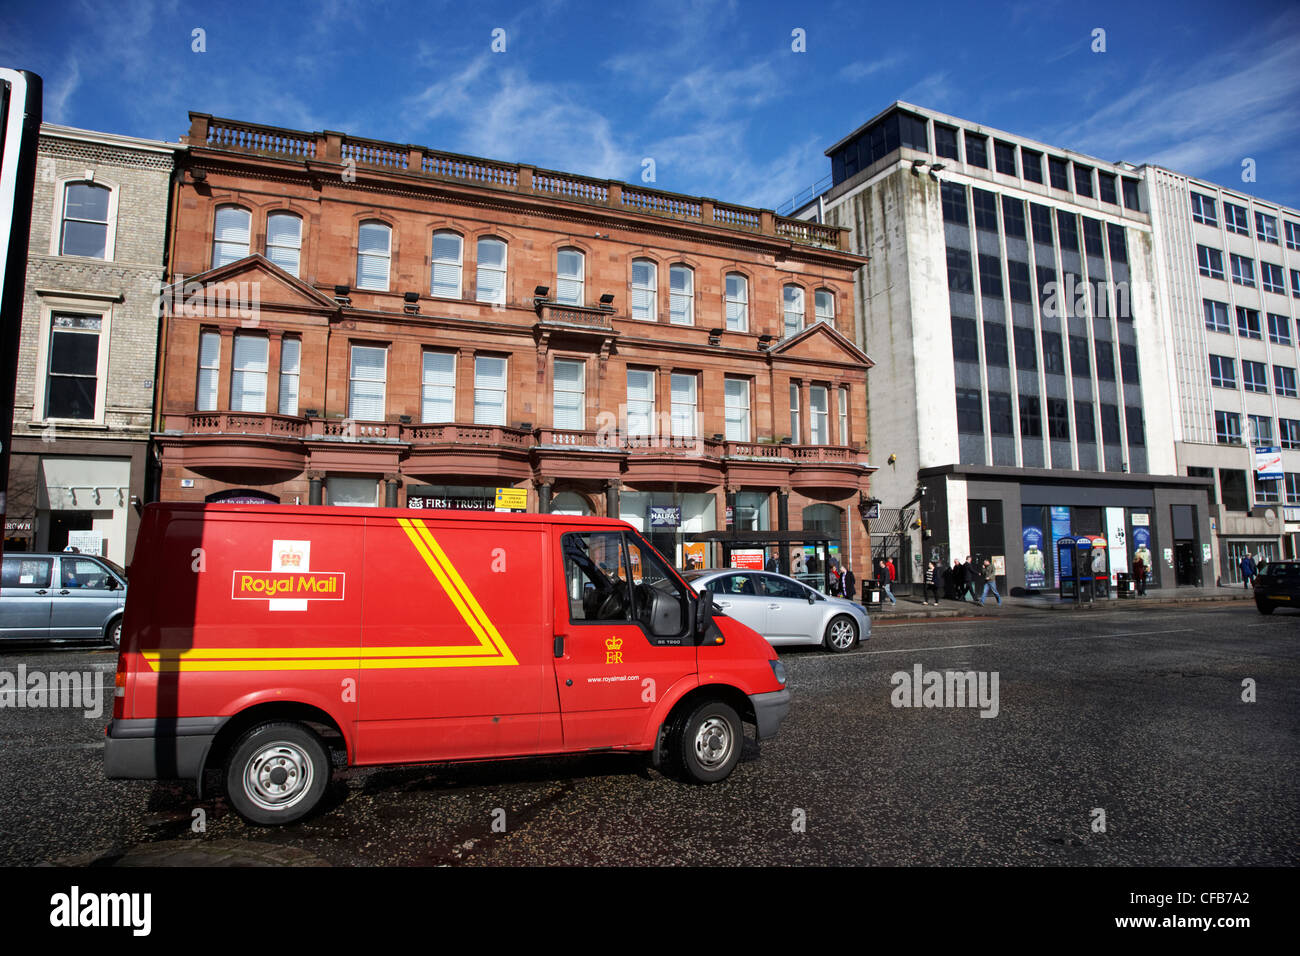 06afc870703434 royal mail delivery van parked in Belfast city centre Northern Ireland UK